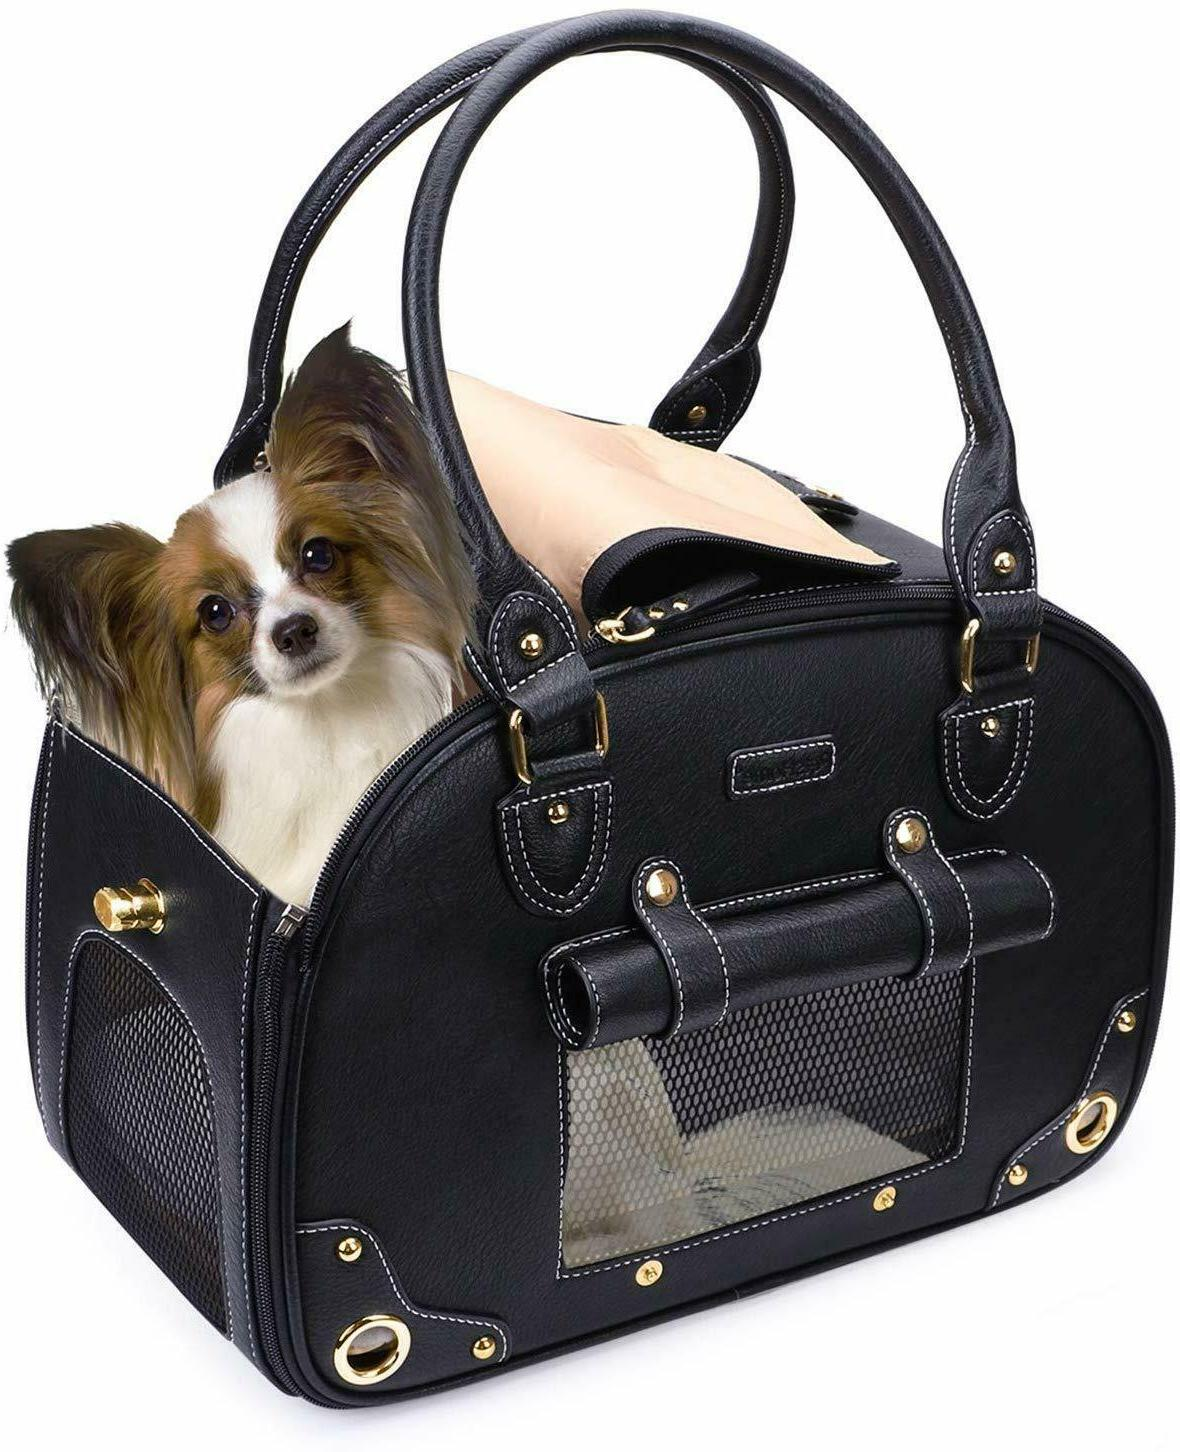 Portable SM Dog Cat Carrier Purse PU Leather Bag Tote Travel